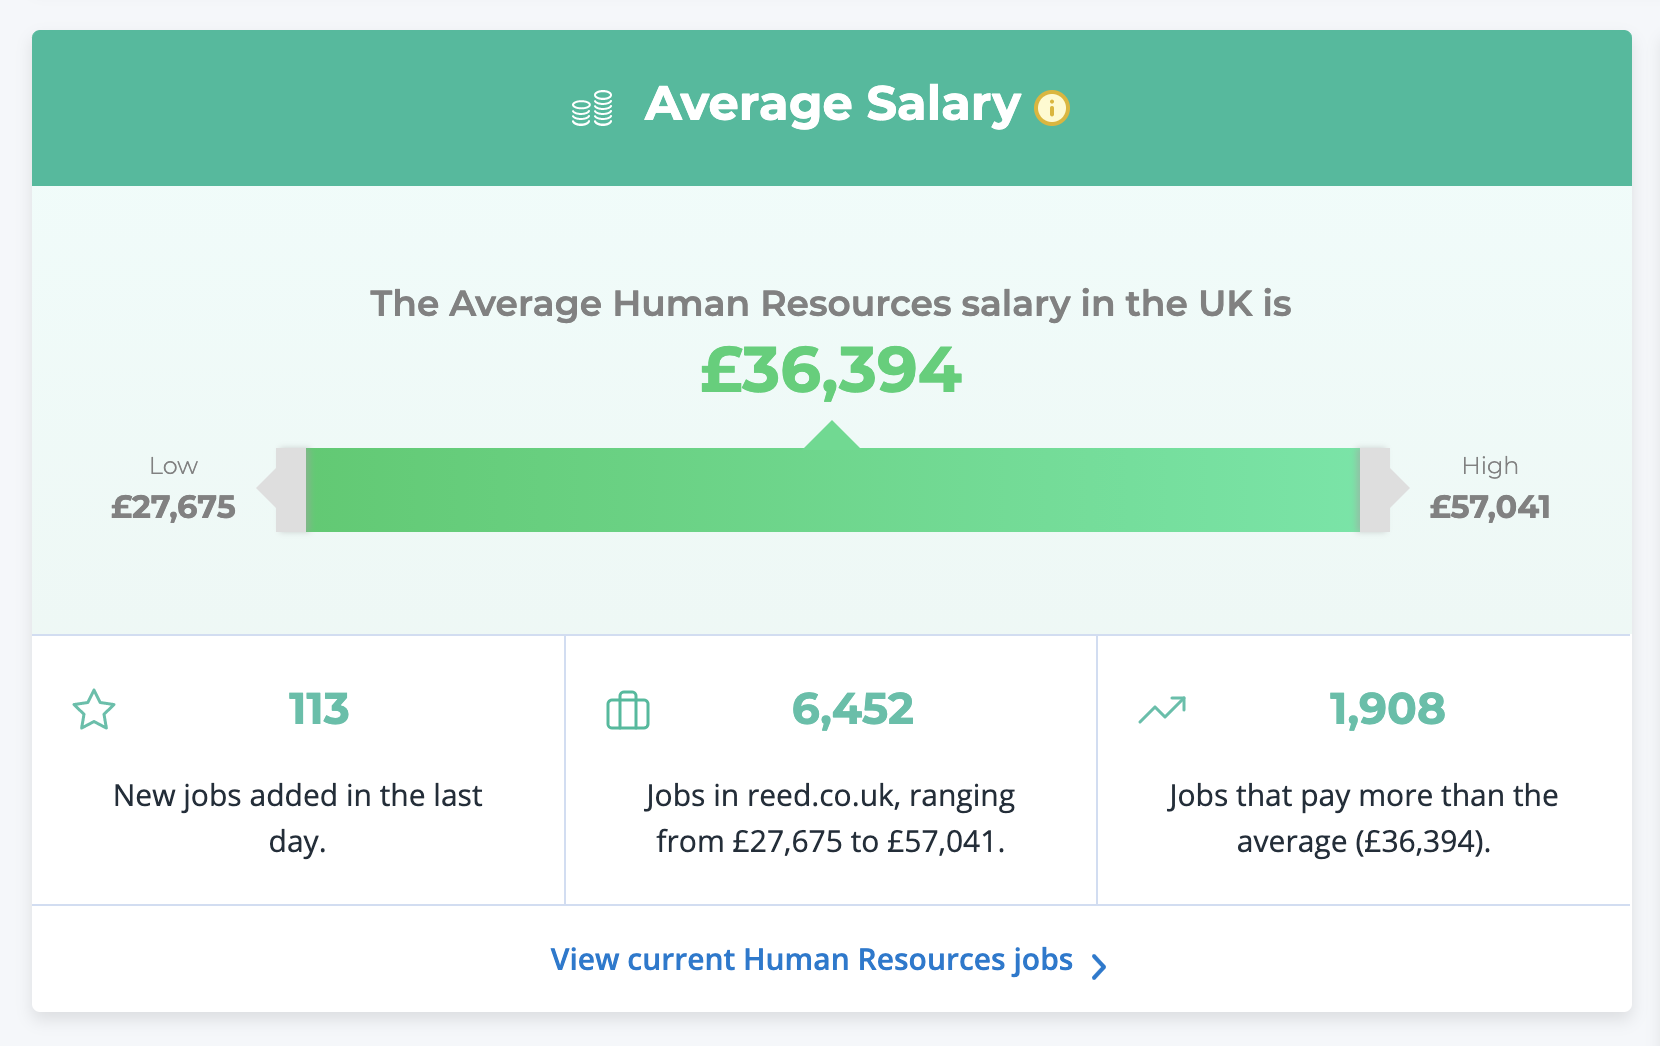 Average Human Resources salary in the UK | Source: REED